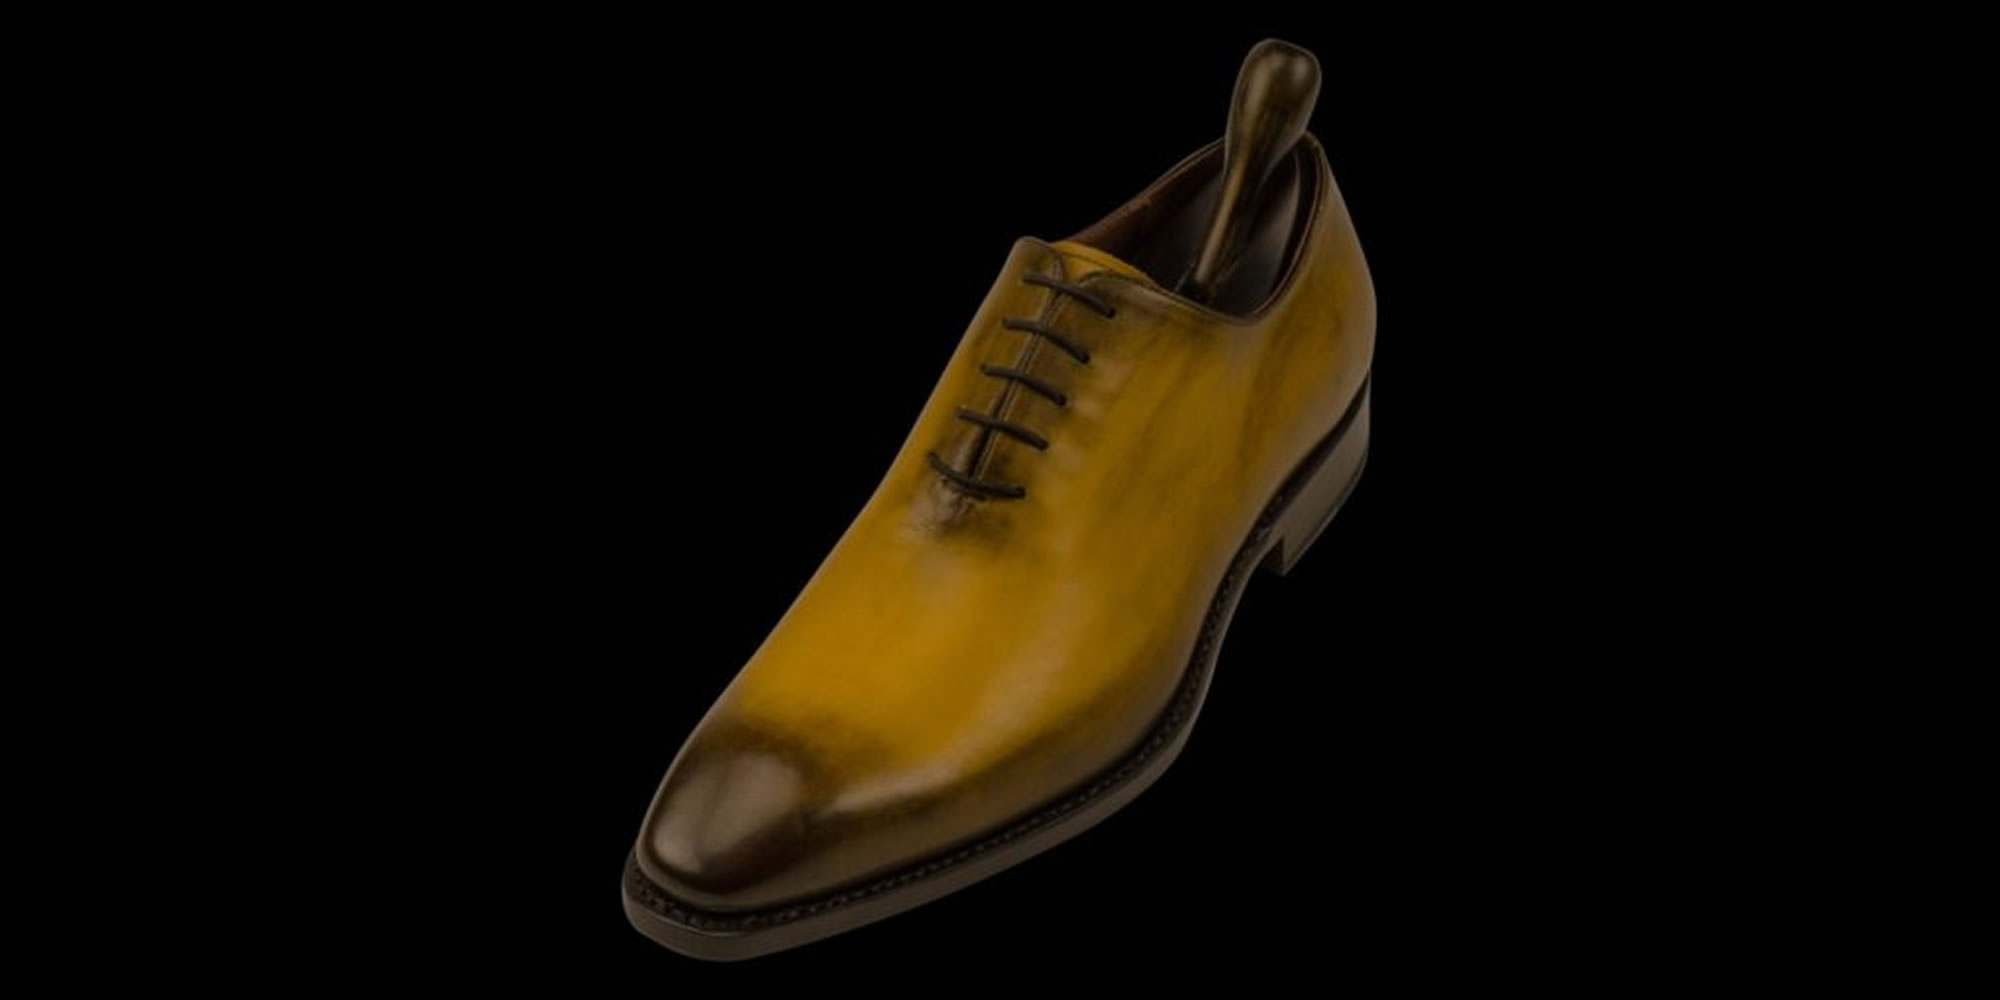 milanesi goodyear welted shoes hand burrnished